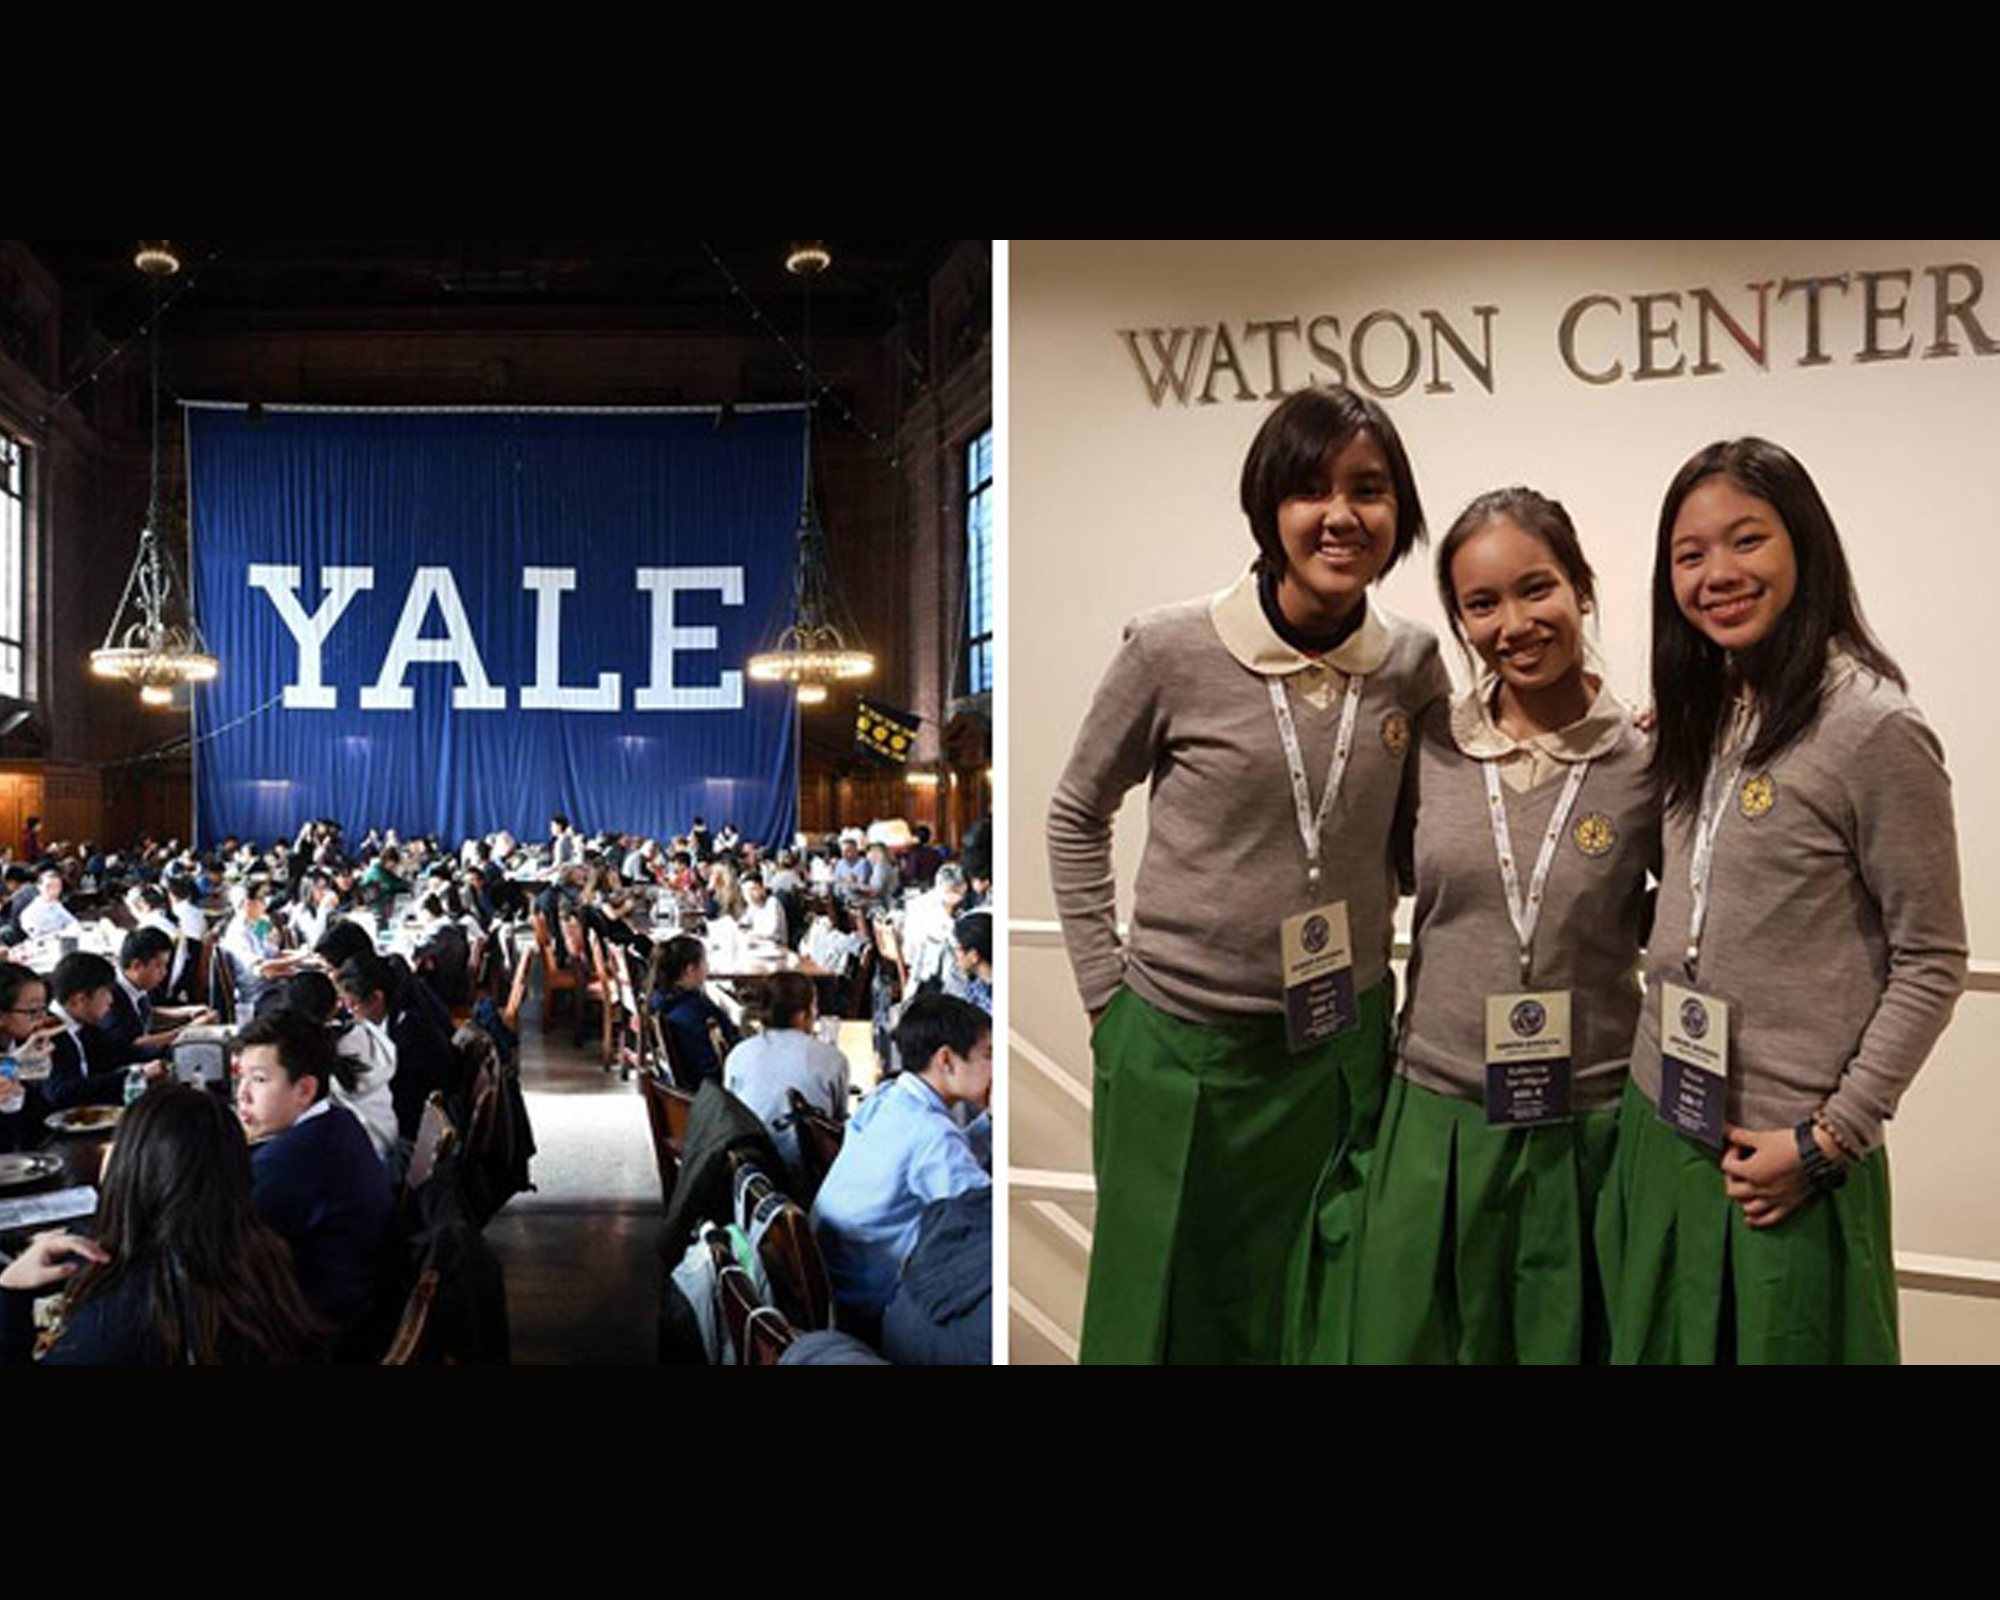 All-Pinay Team Gets Top Ranking in Prestigious World Scholar's Cup in Yale by Jillianne E. Castillo | Smart Parenting